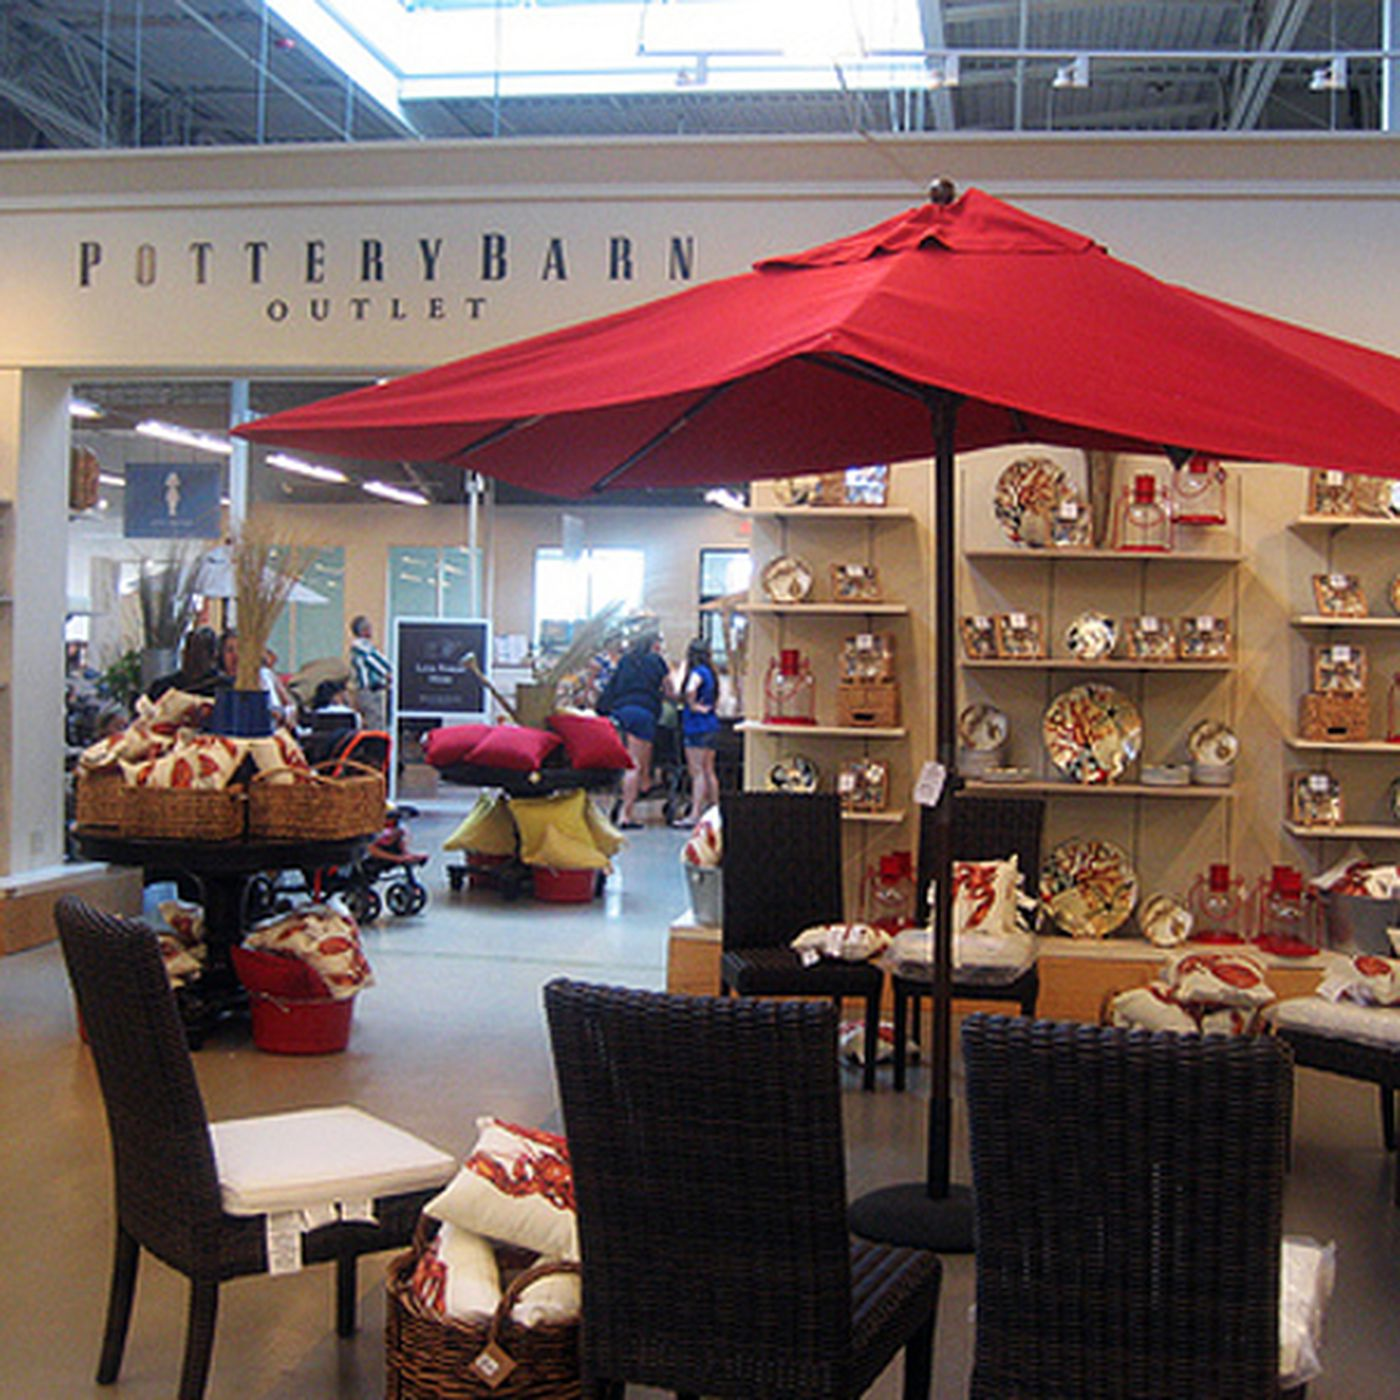 Pottery Barn Outlet Headed